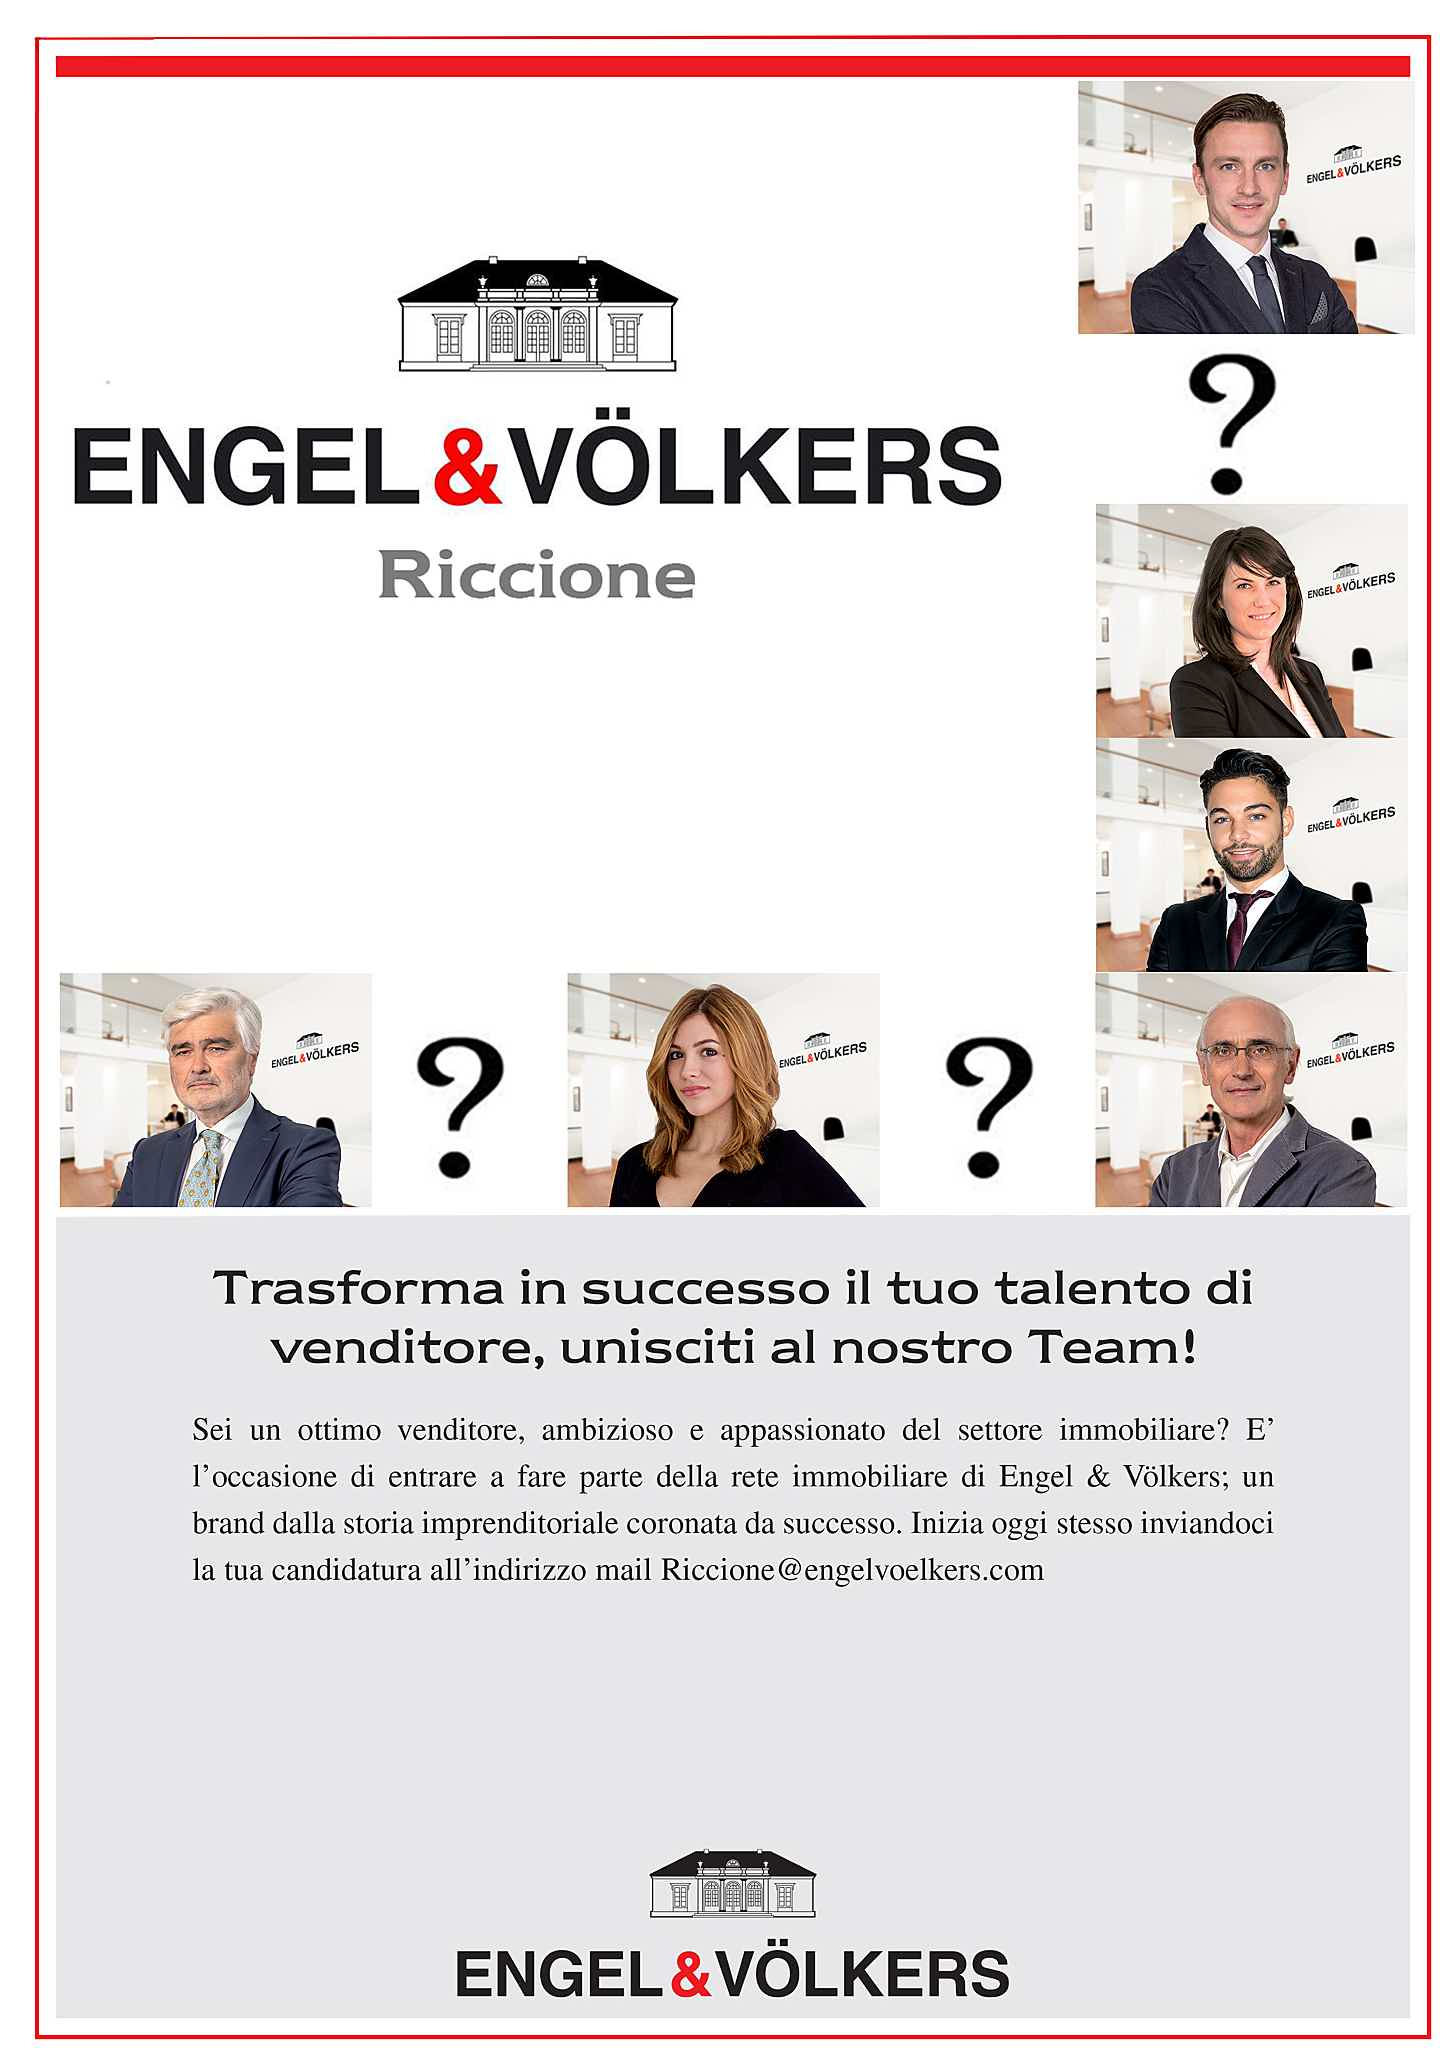 Riccione - Recruiting foto team.jpg